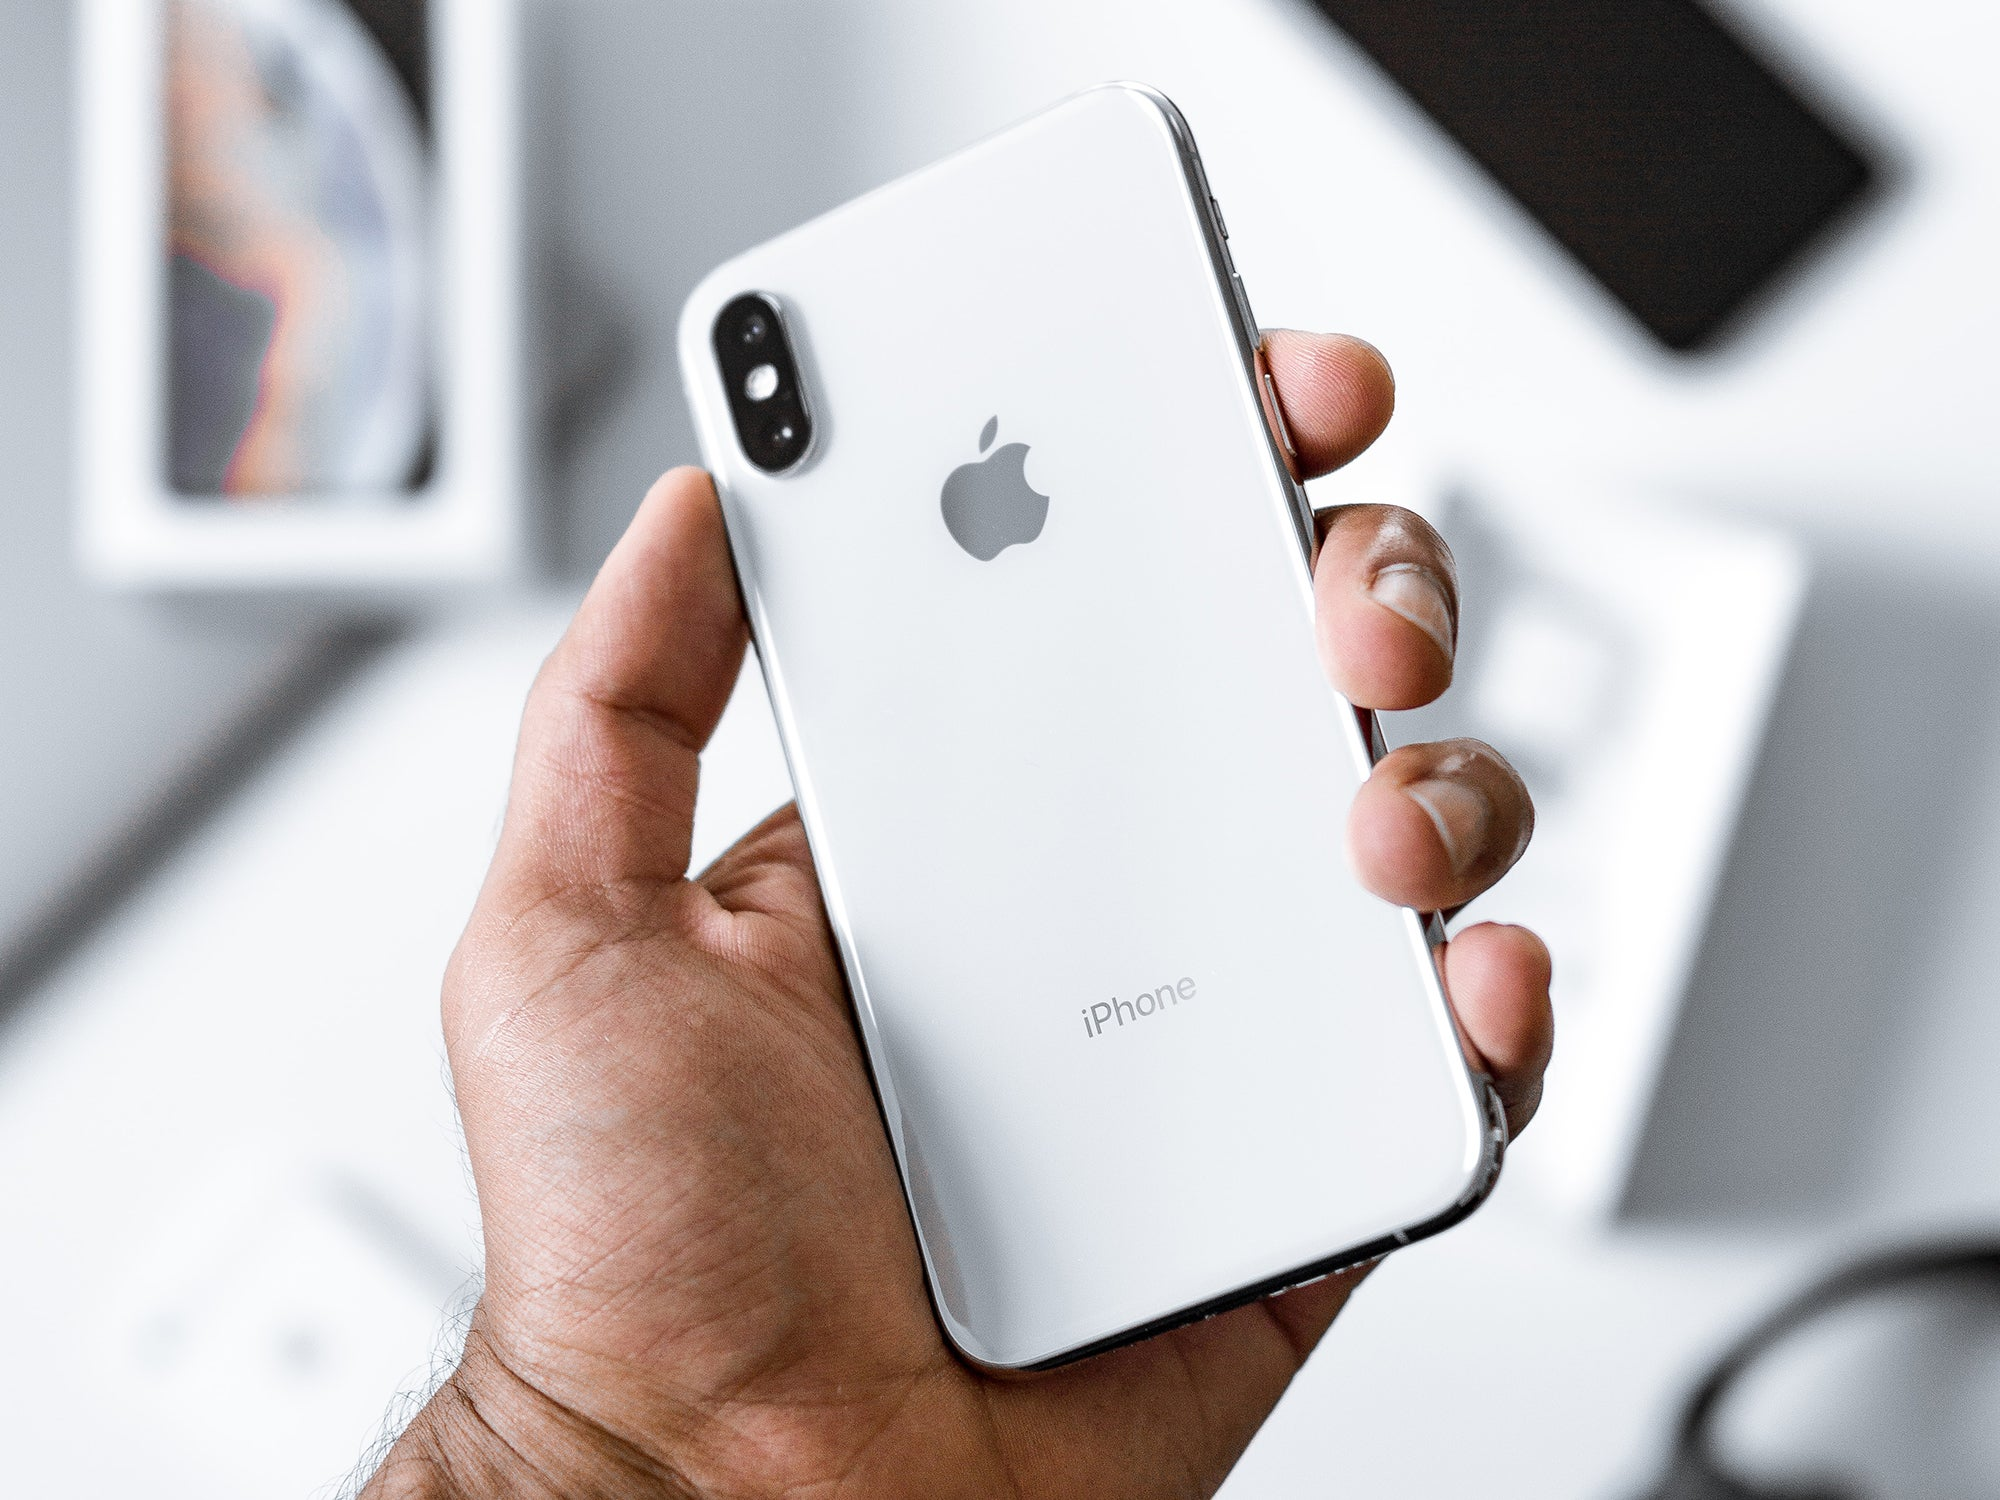 a person holding a white Apple iPhone in their hand